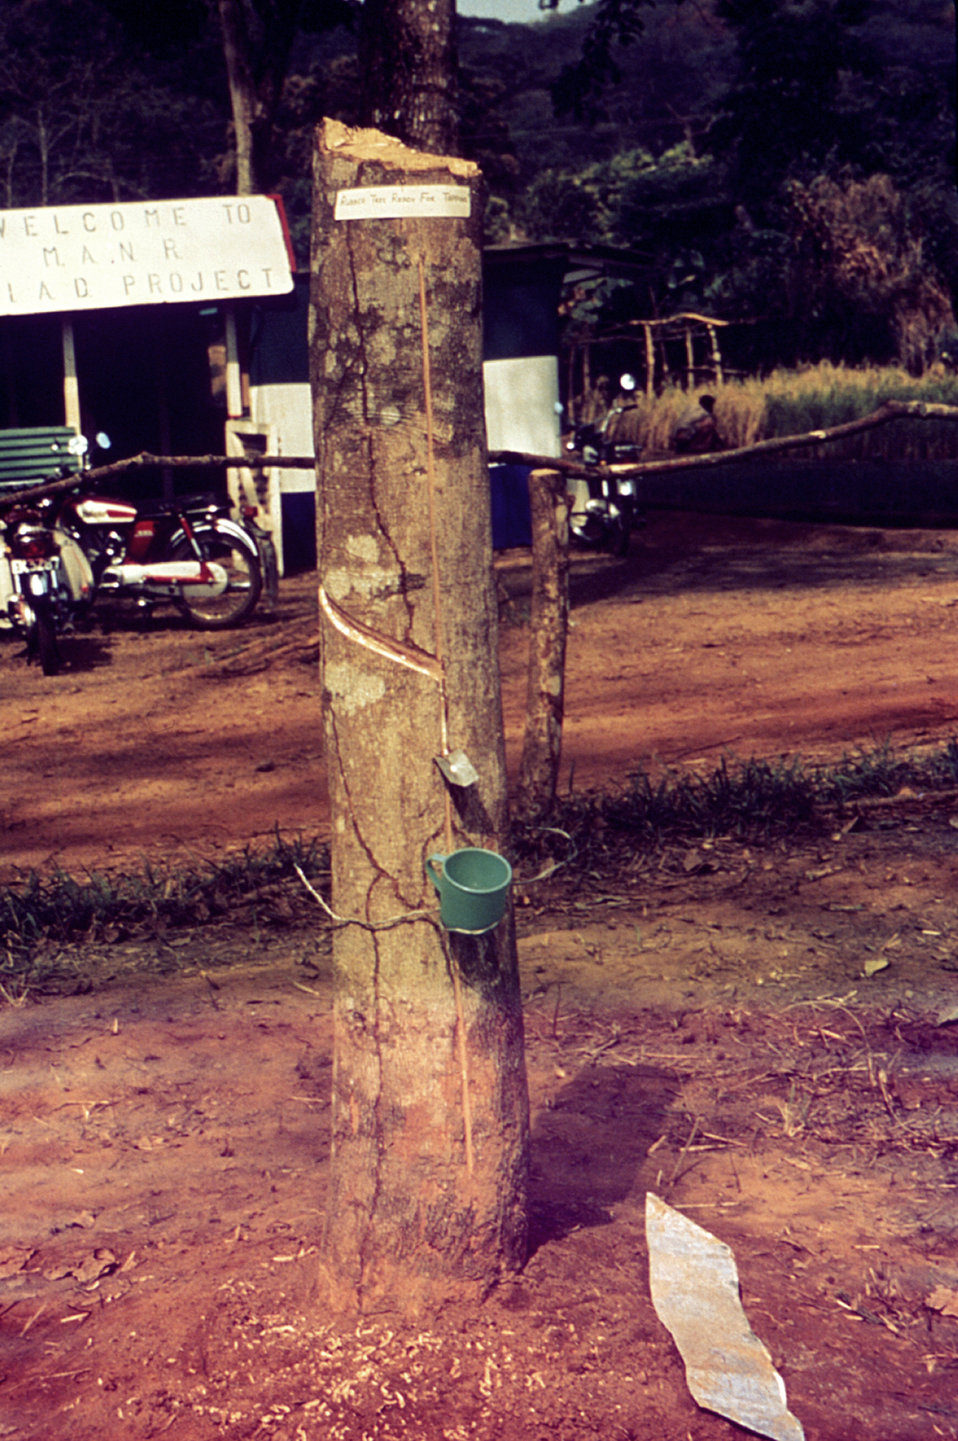 This image depicts a rubber tree with a collecting cup at the site of a 1976 Sierra Leone Lassa fever field study.